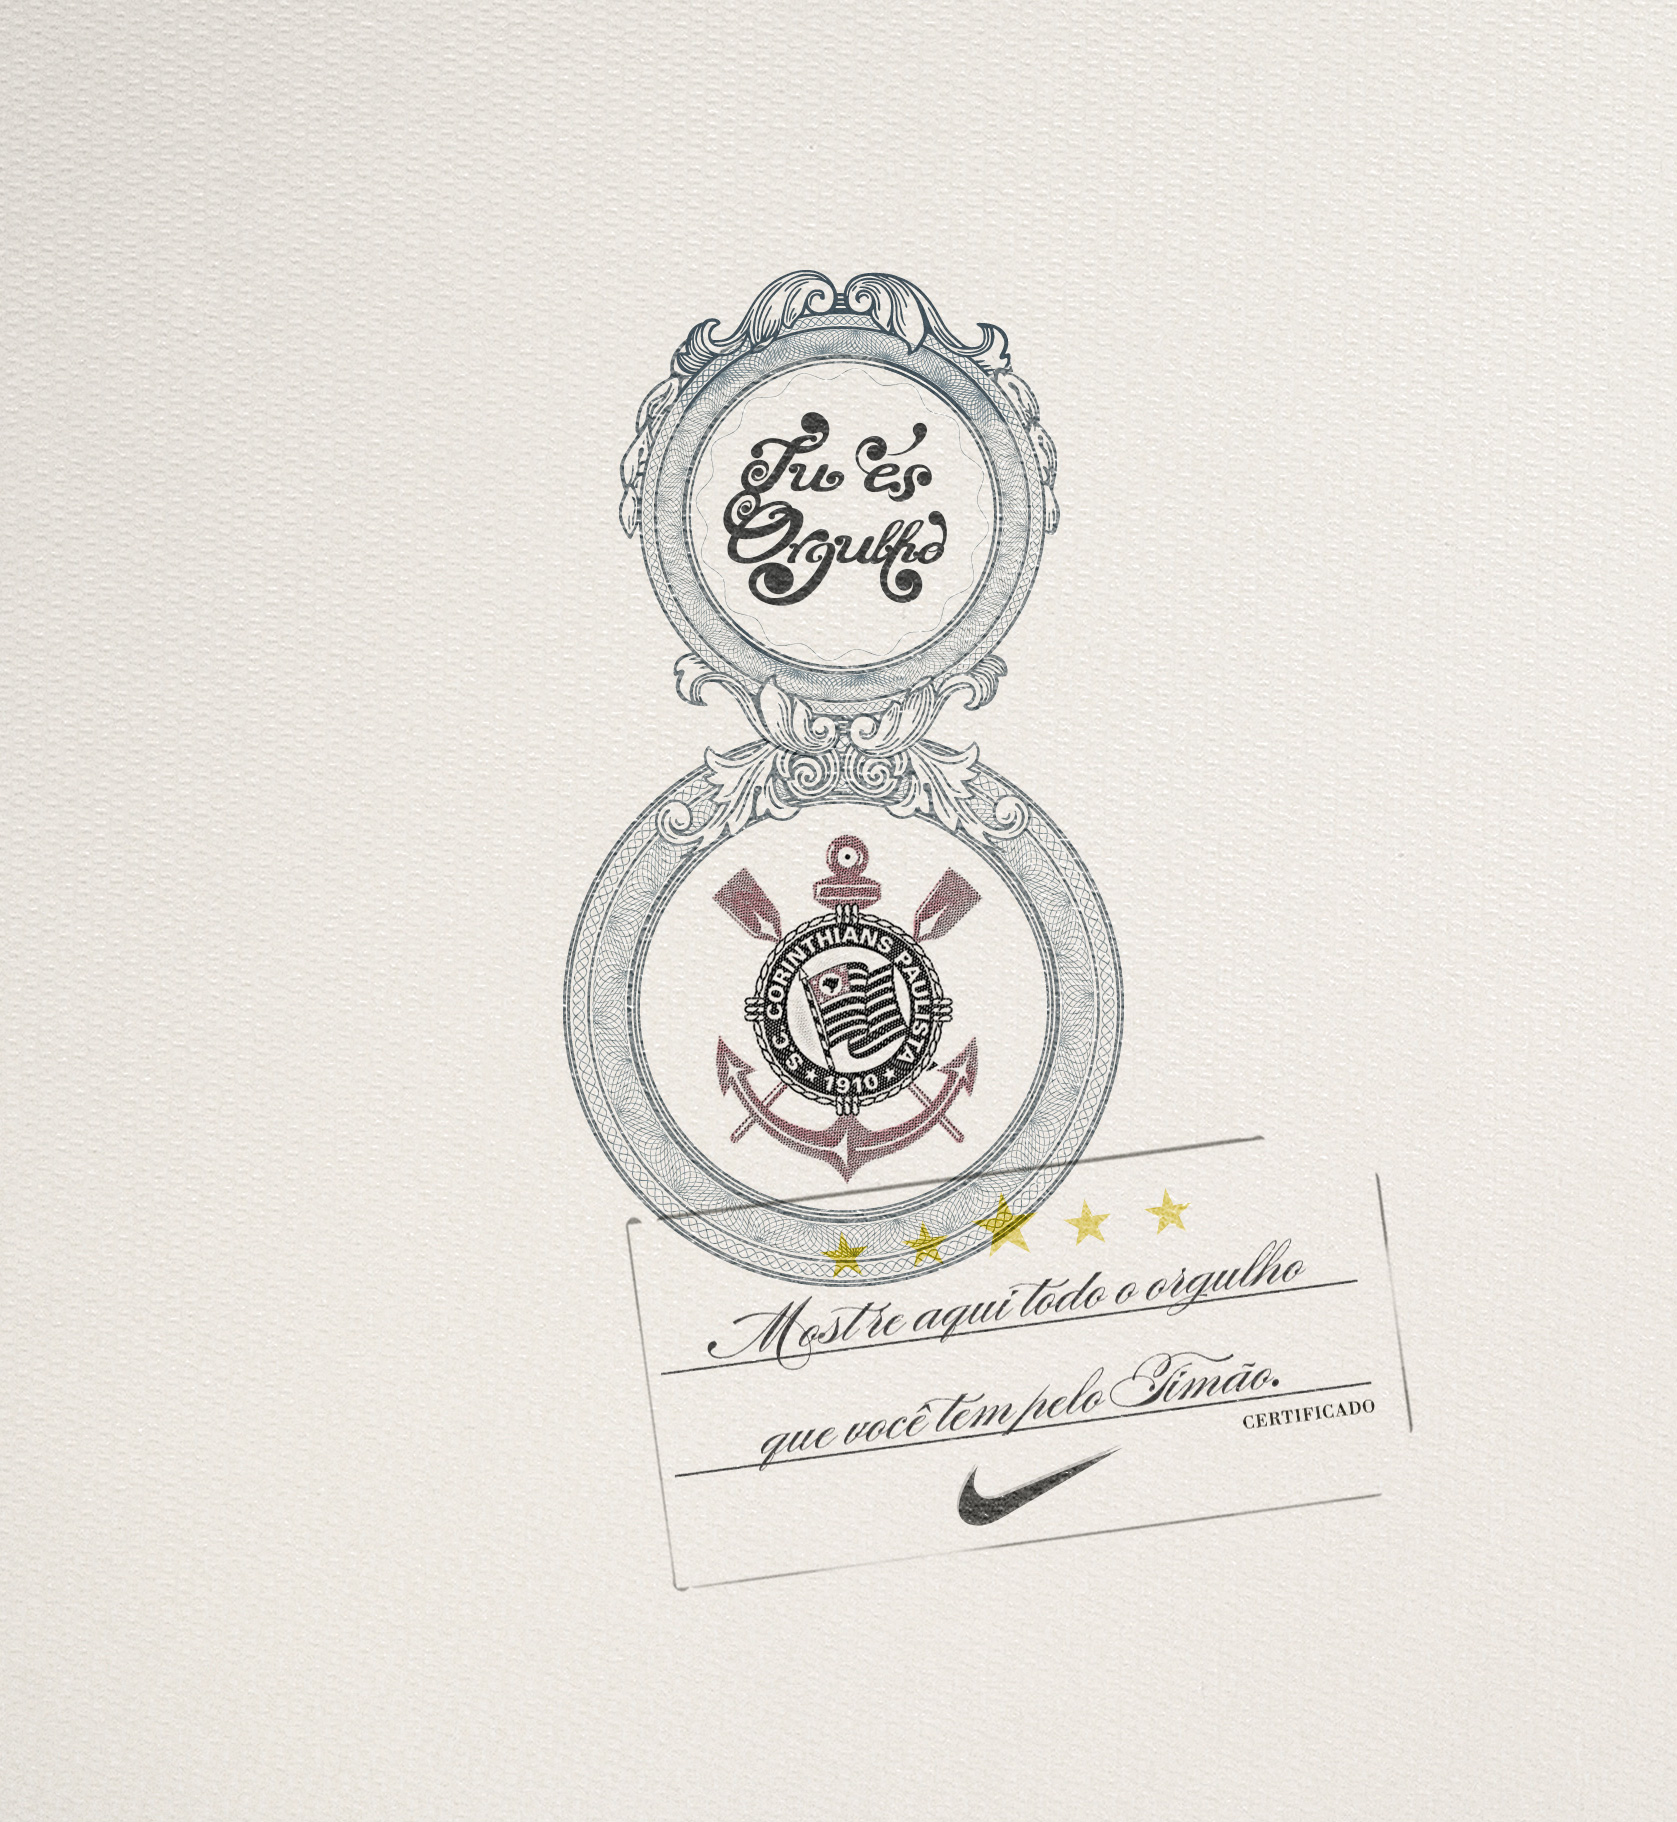 48889099ff In the Launching of the Corinthians new jersey, with the theme You're  Proud. The fans received the Certificate of Love for the team.